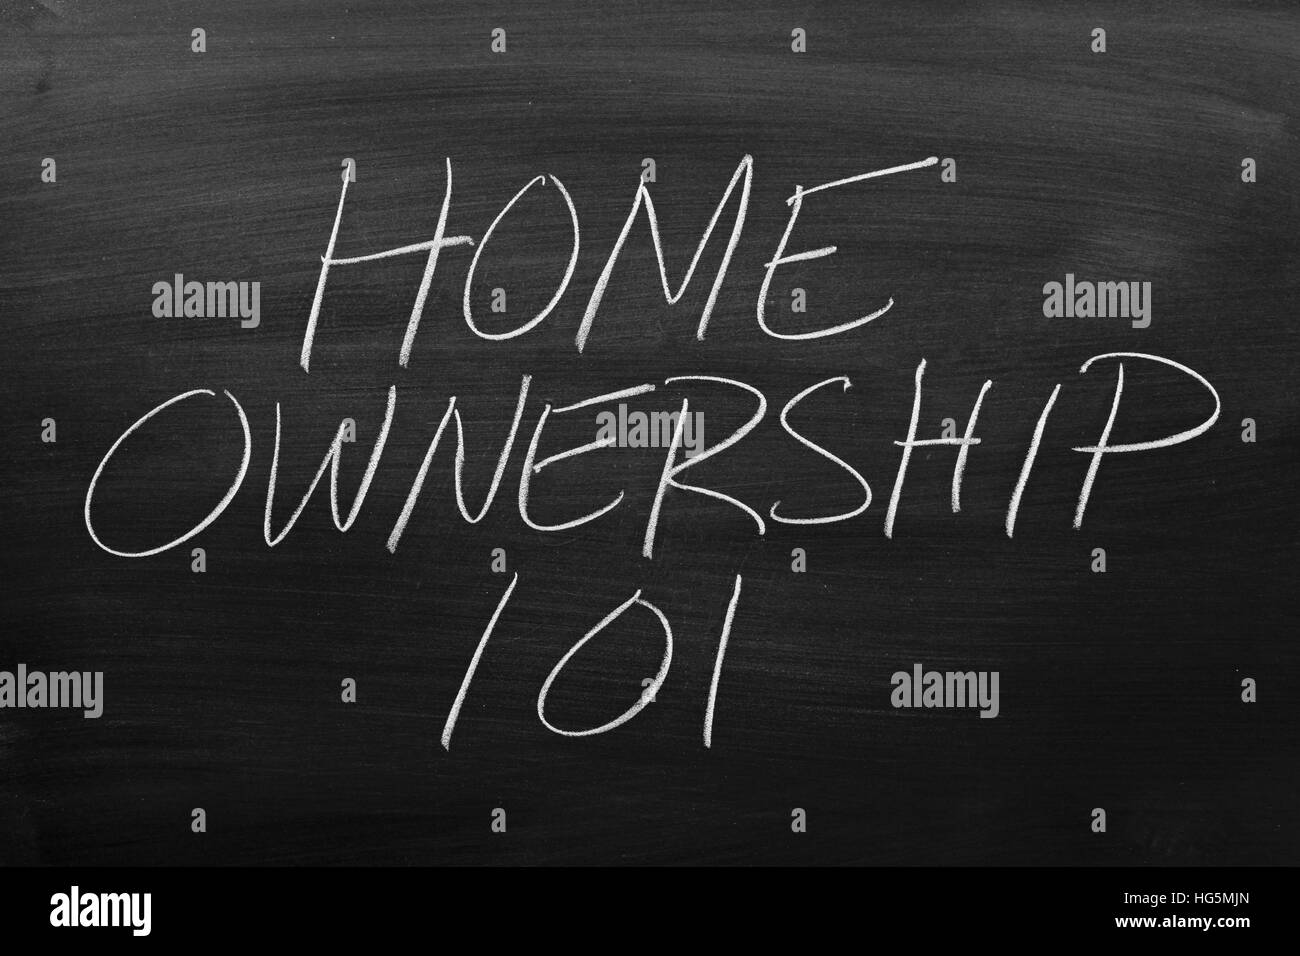 The words 'Home Ownership 101' on a blackboard in chalk - Stock Image